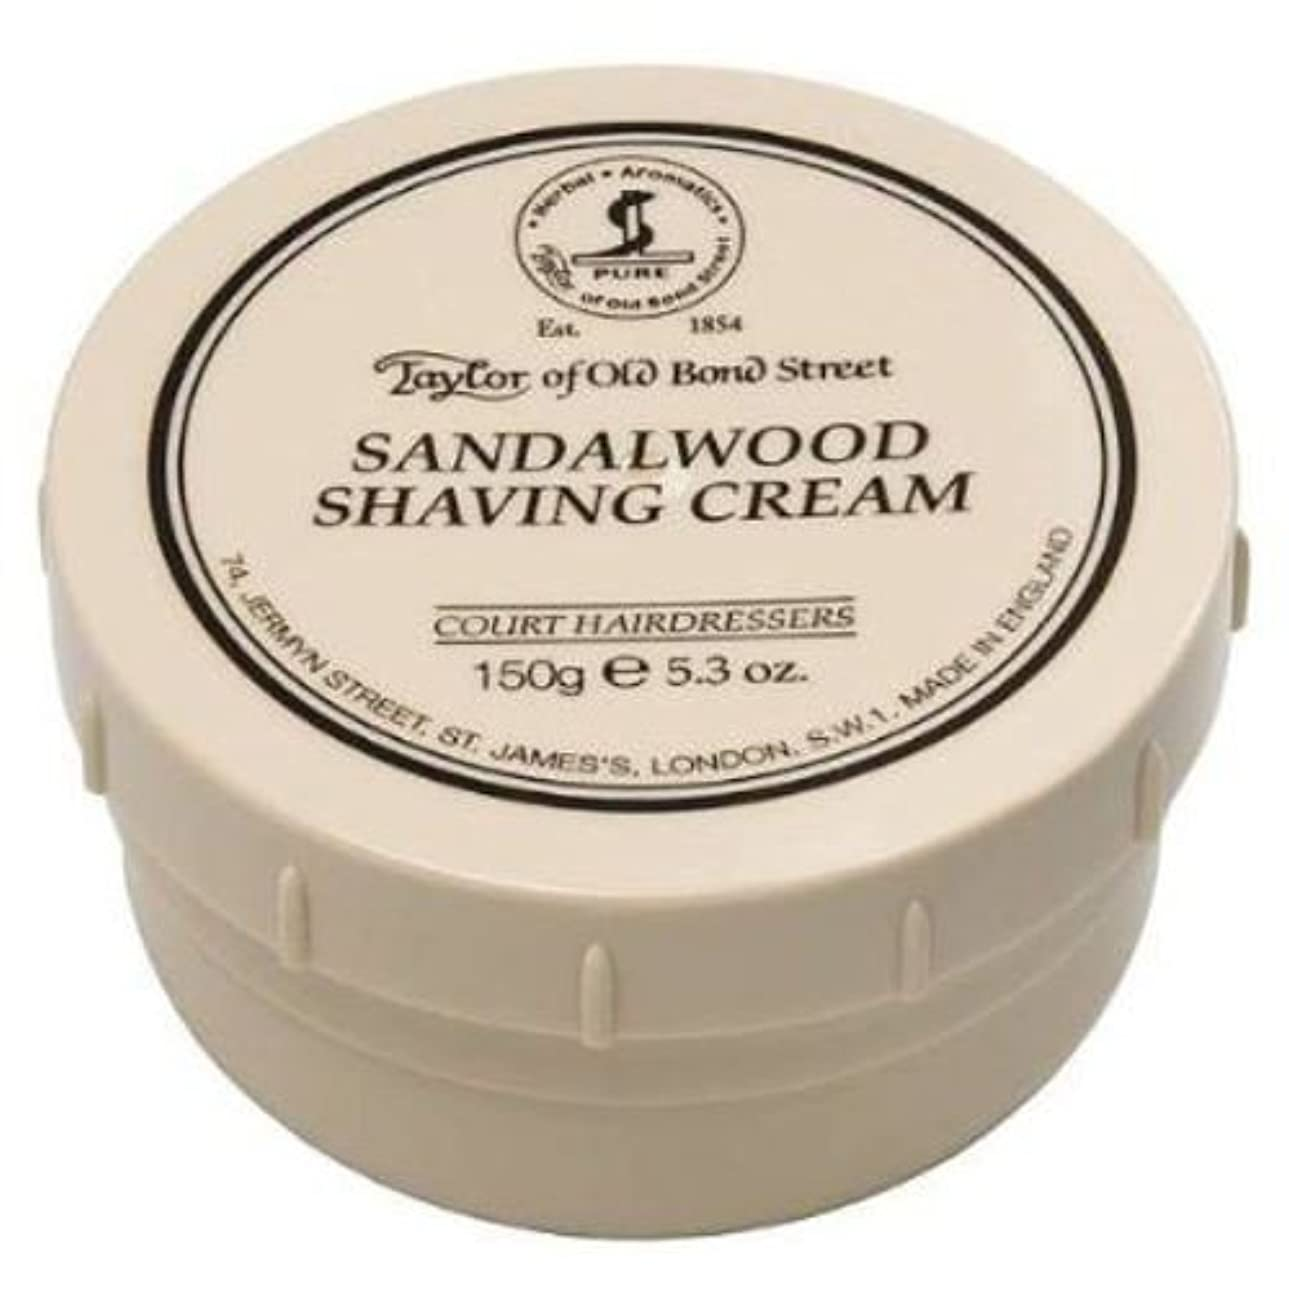 苦しめるスパイ結び目Taylor of Old Bond Street Sandalwood Shaving Cream , 5.3 oz, 2 Pack by Taylor of Old Bond Street